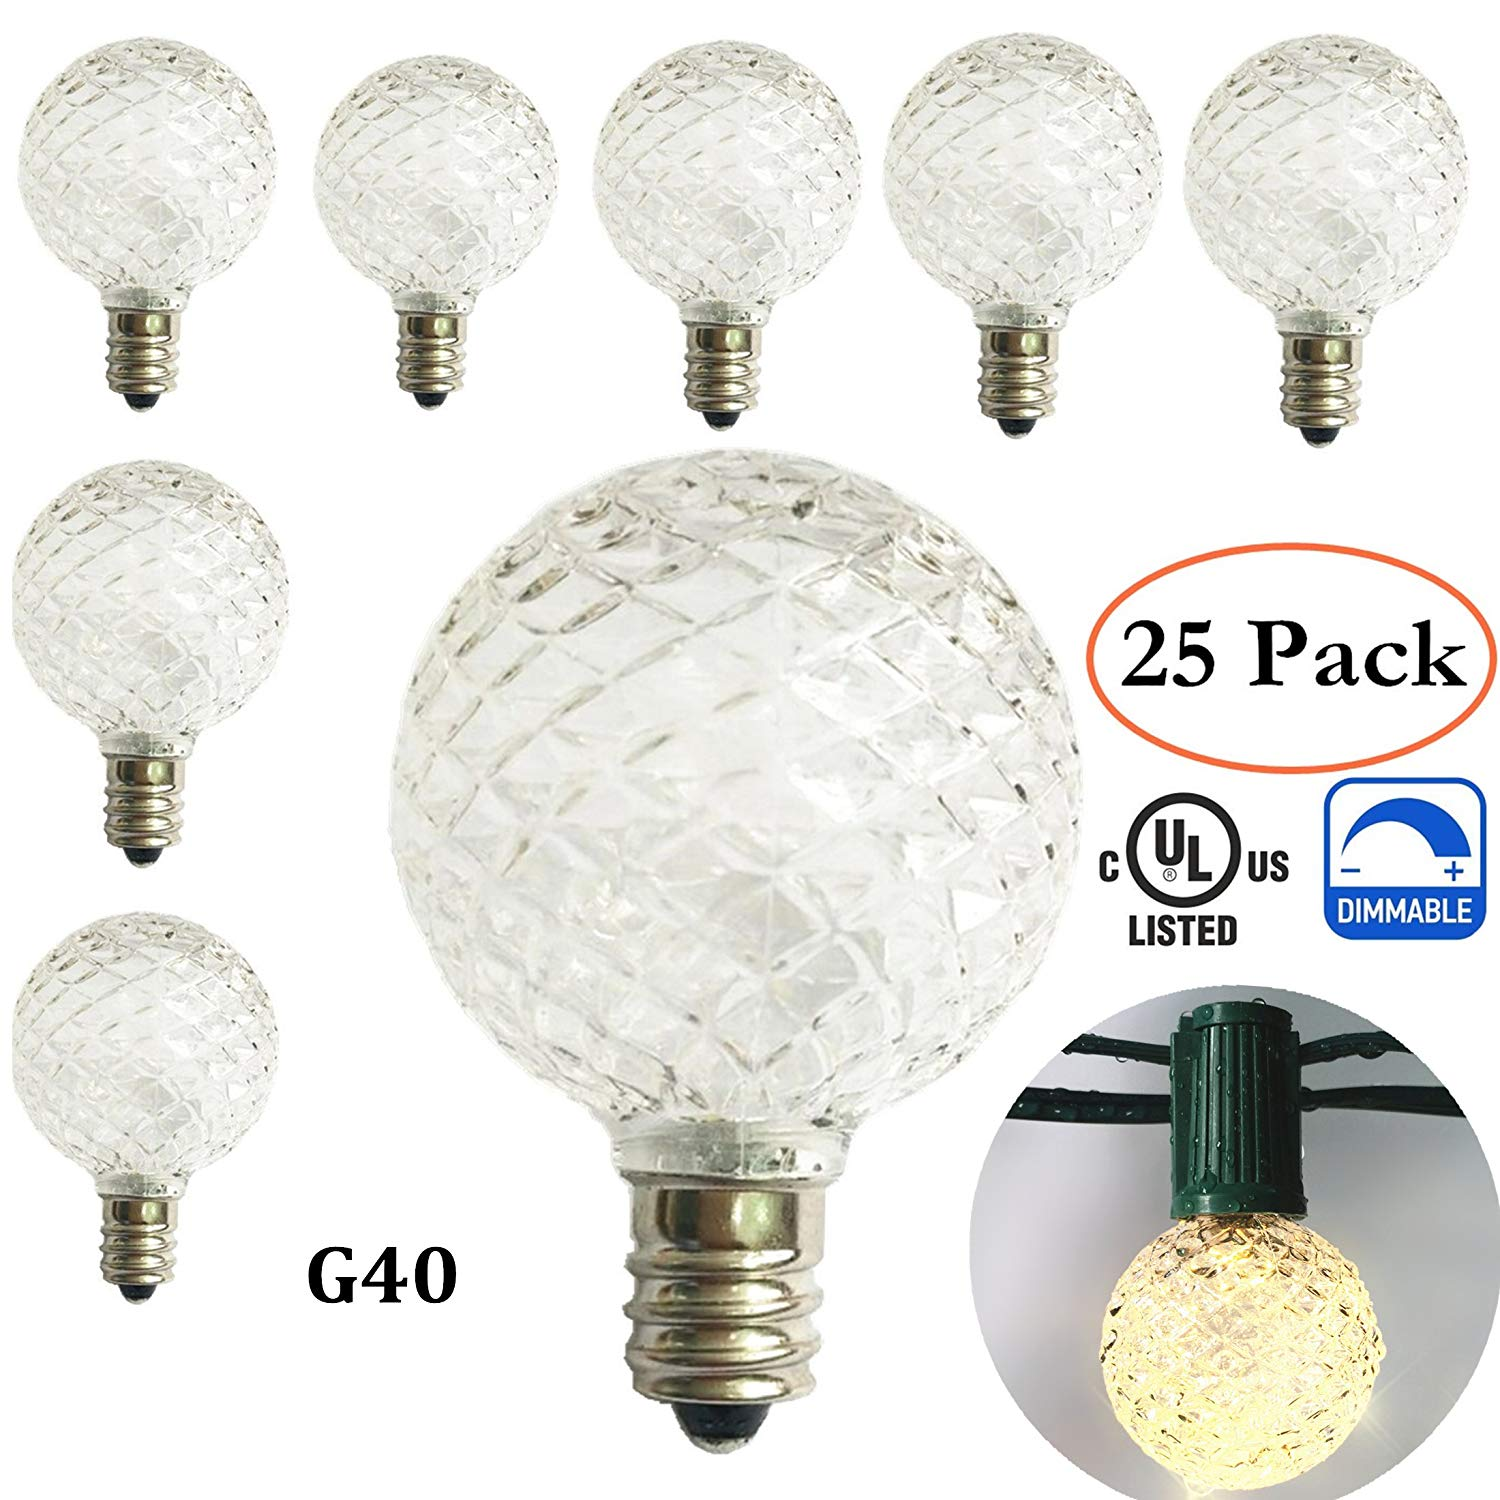 G40 Replacement Bulbs LED for Globe Patio String Lights, 25 Pack,1.56-inch,Crystal Ball Style, 0.5 Watt,Fits C7/E12 Candelabra Screw Base,Indoor/Outdoor Use,Warm White (Warm White-G40 Bulb)